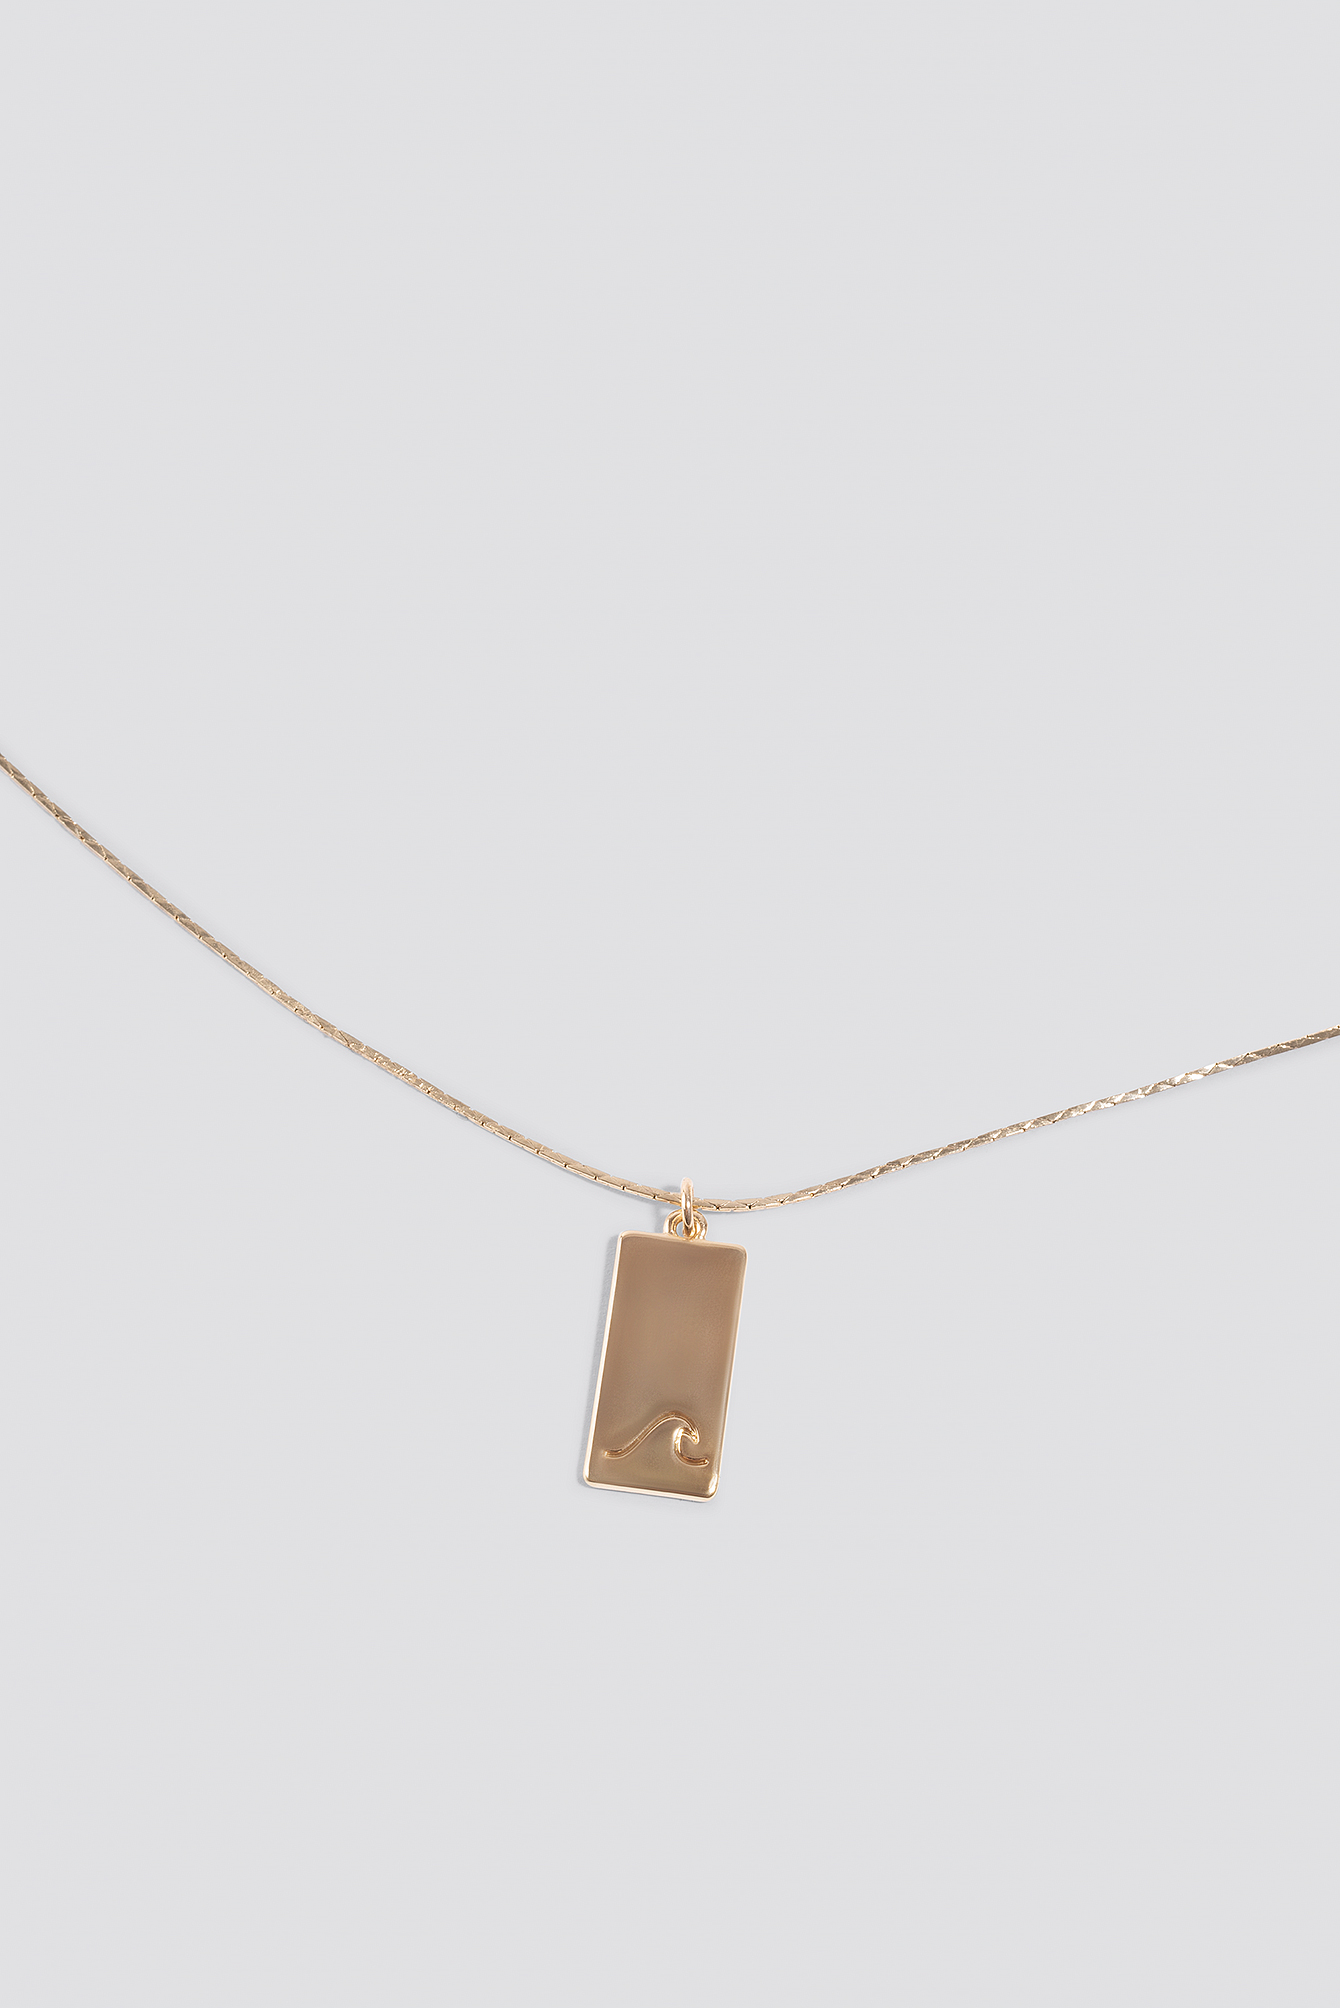 Matilda Djerf Wave Necklace NA-KD.COM